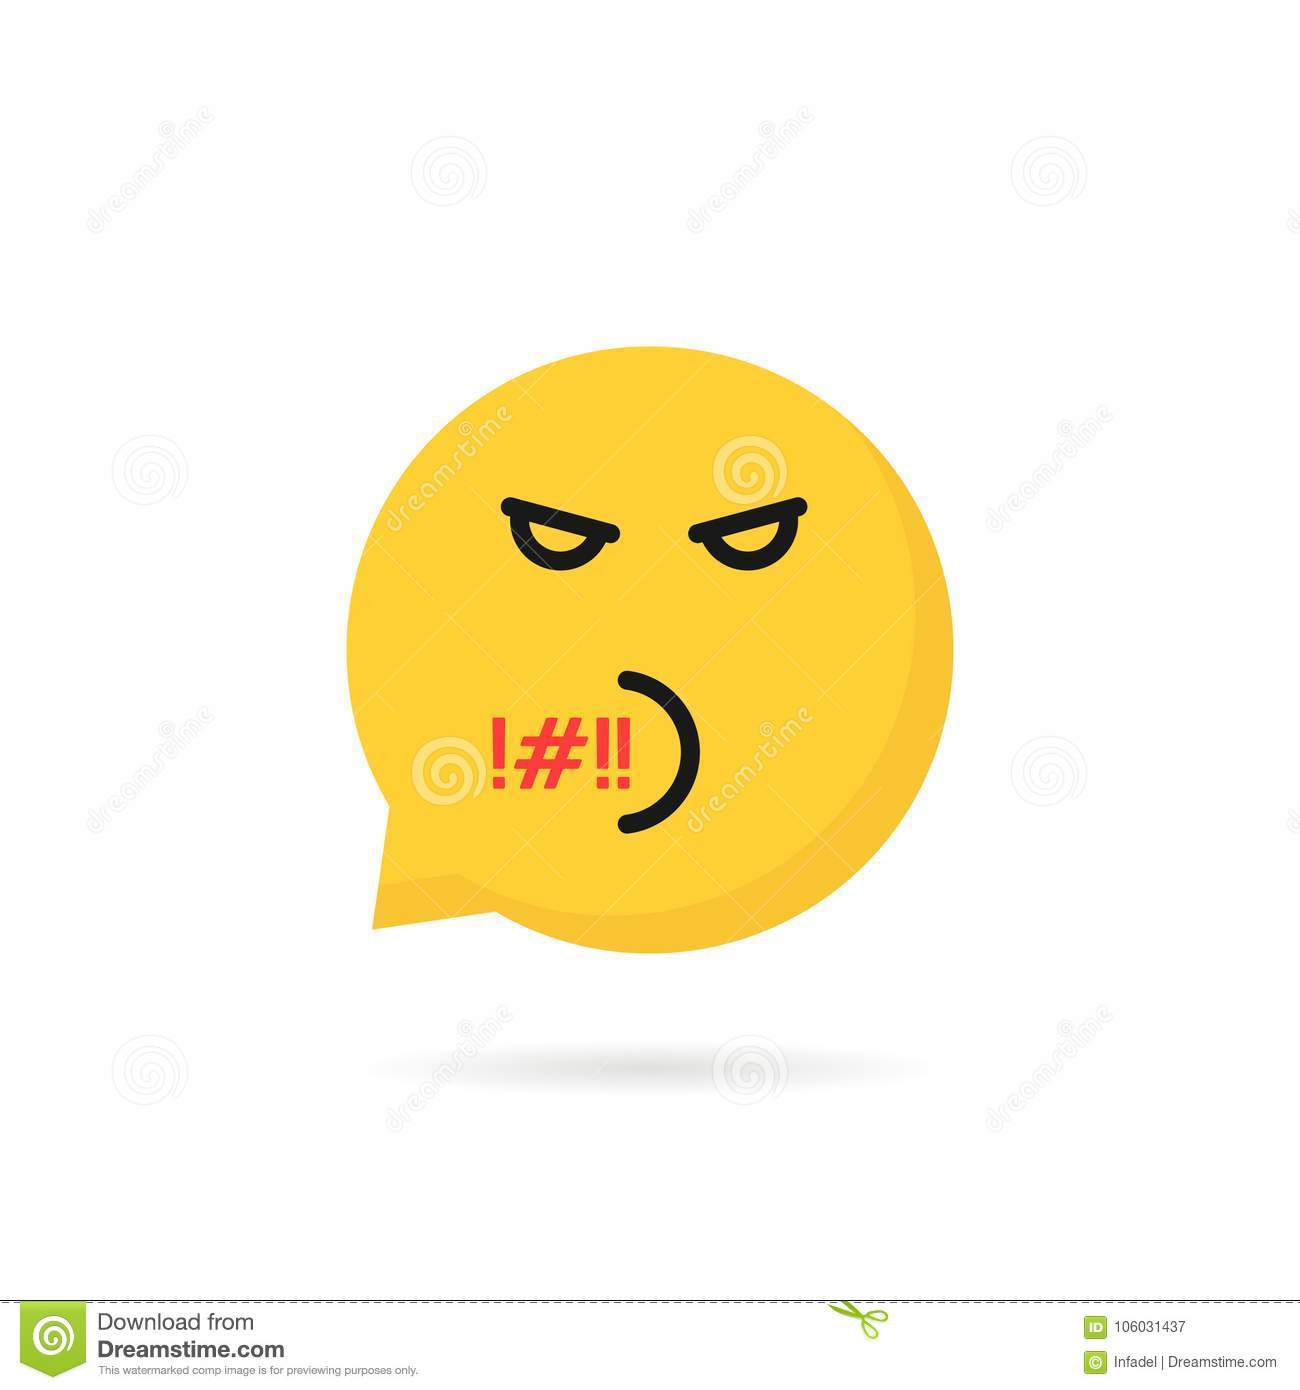 Rude stock illustrations 1775 rude stock illustrations vectors rude emoji speech bubble logo yellow symbol of user interface for quarrel or web dialog biocorpaavc